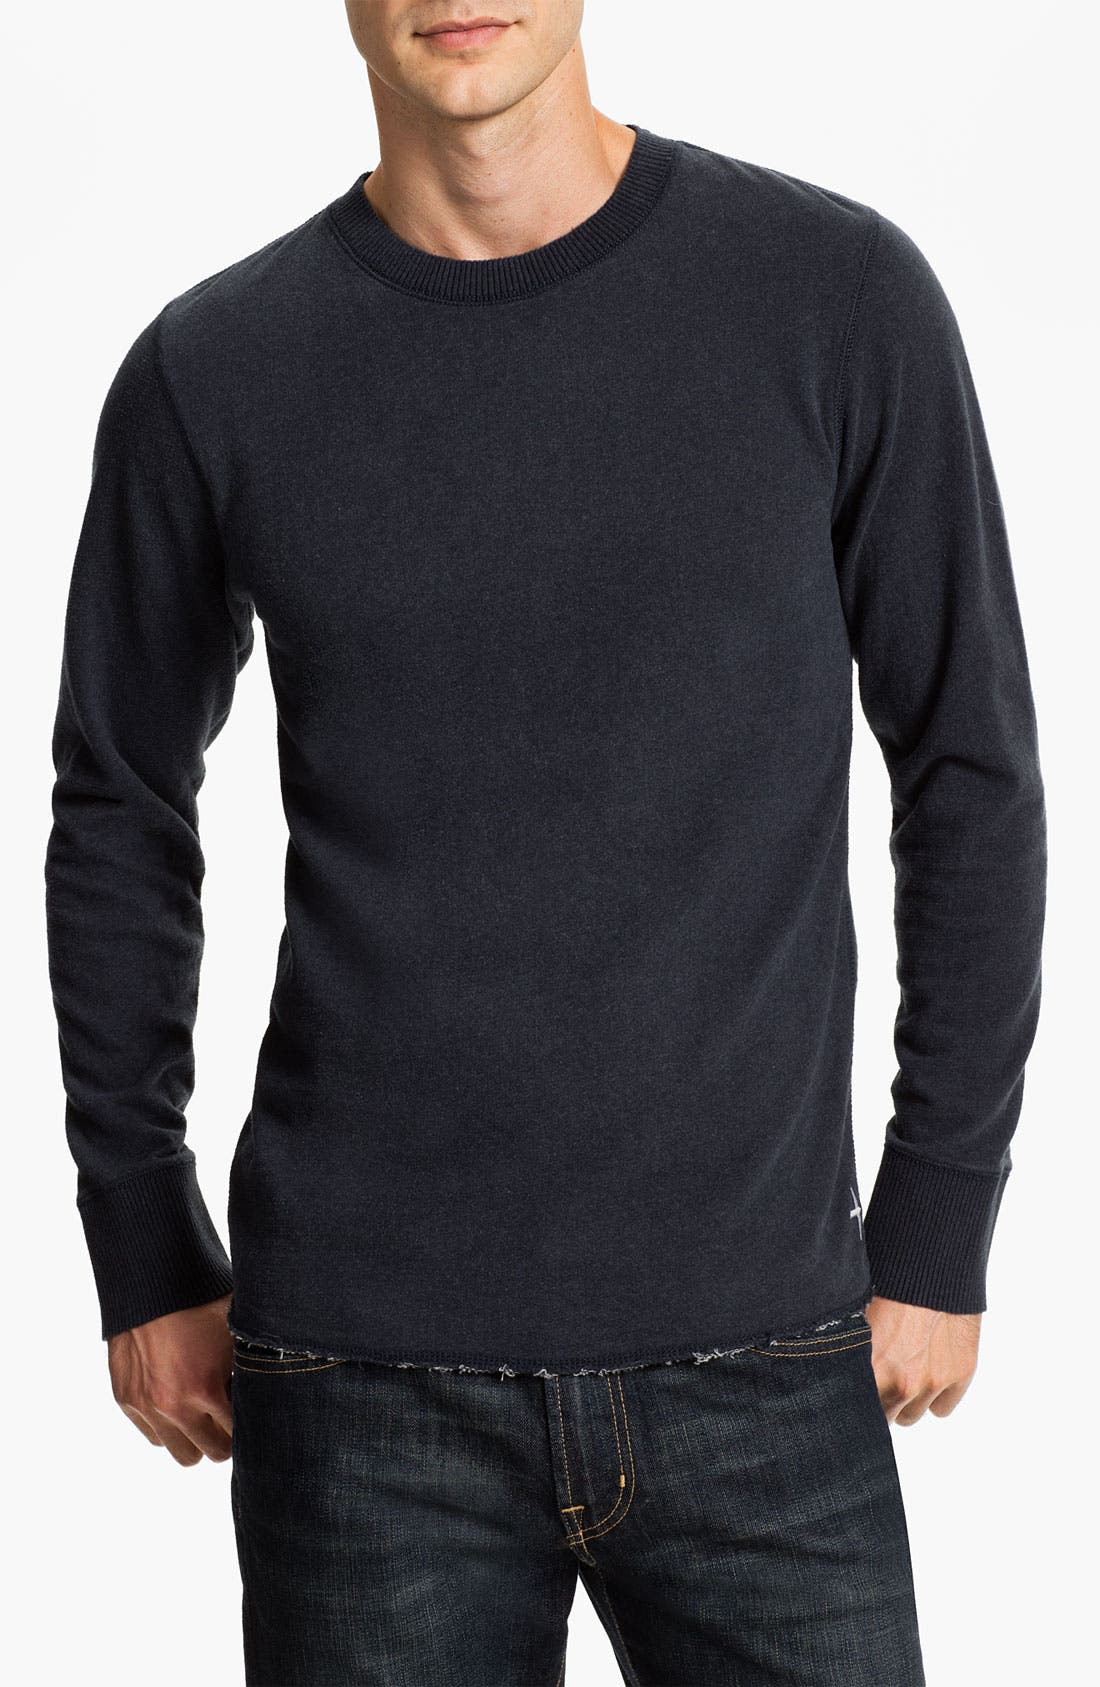 Alternate Image 1 Selected - Relwen Crewneck Thermal Sweatshirt